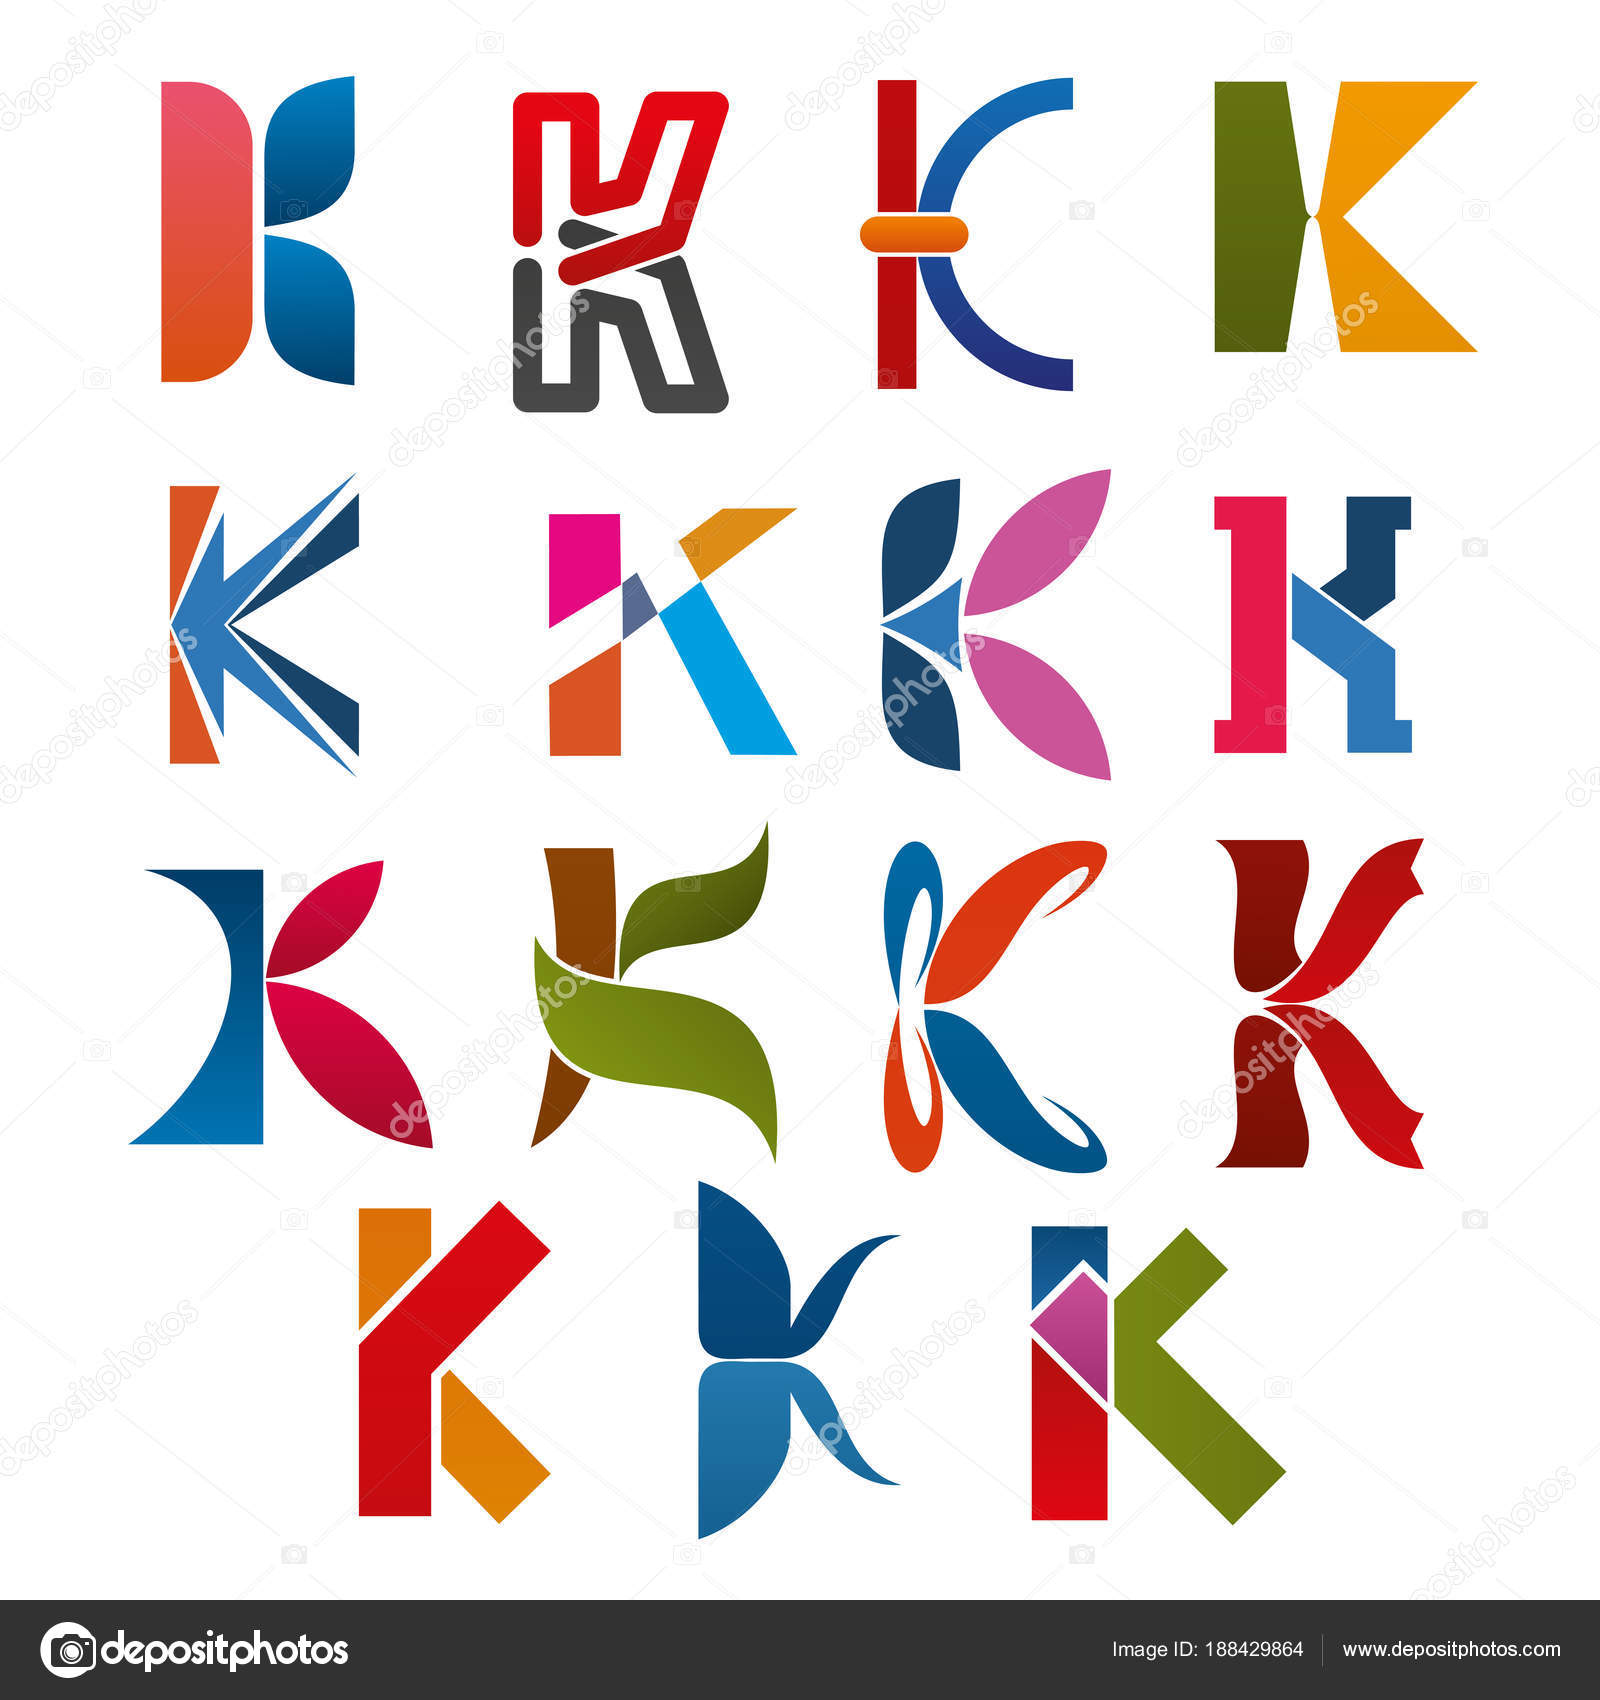 k letter icons template for corporate or business company and brand name emblem vector letter k set in different abstract geometric shapes and colors for